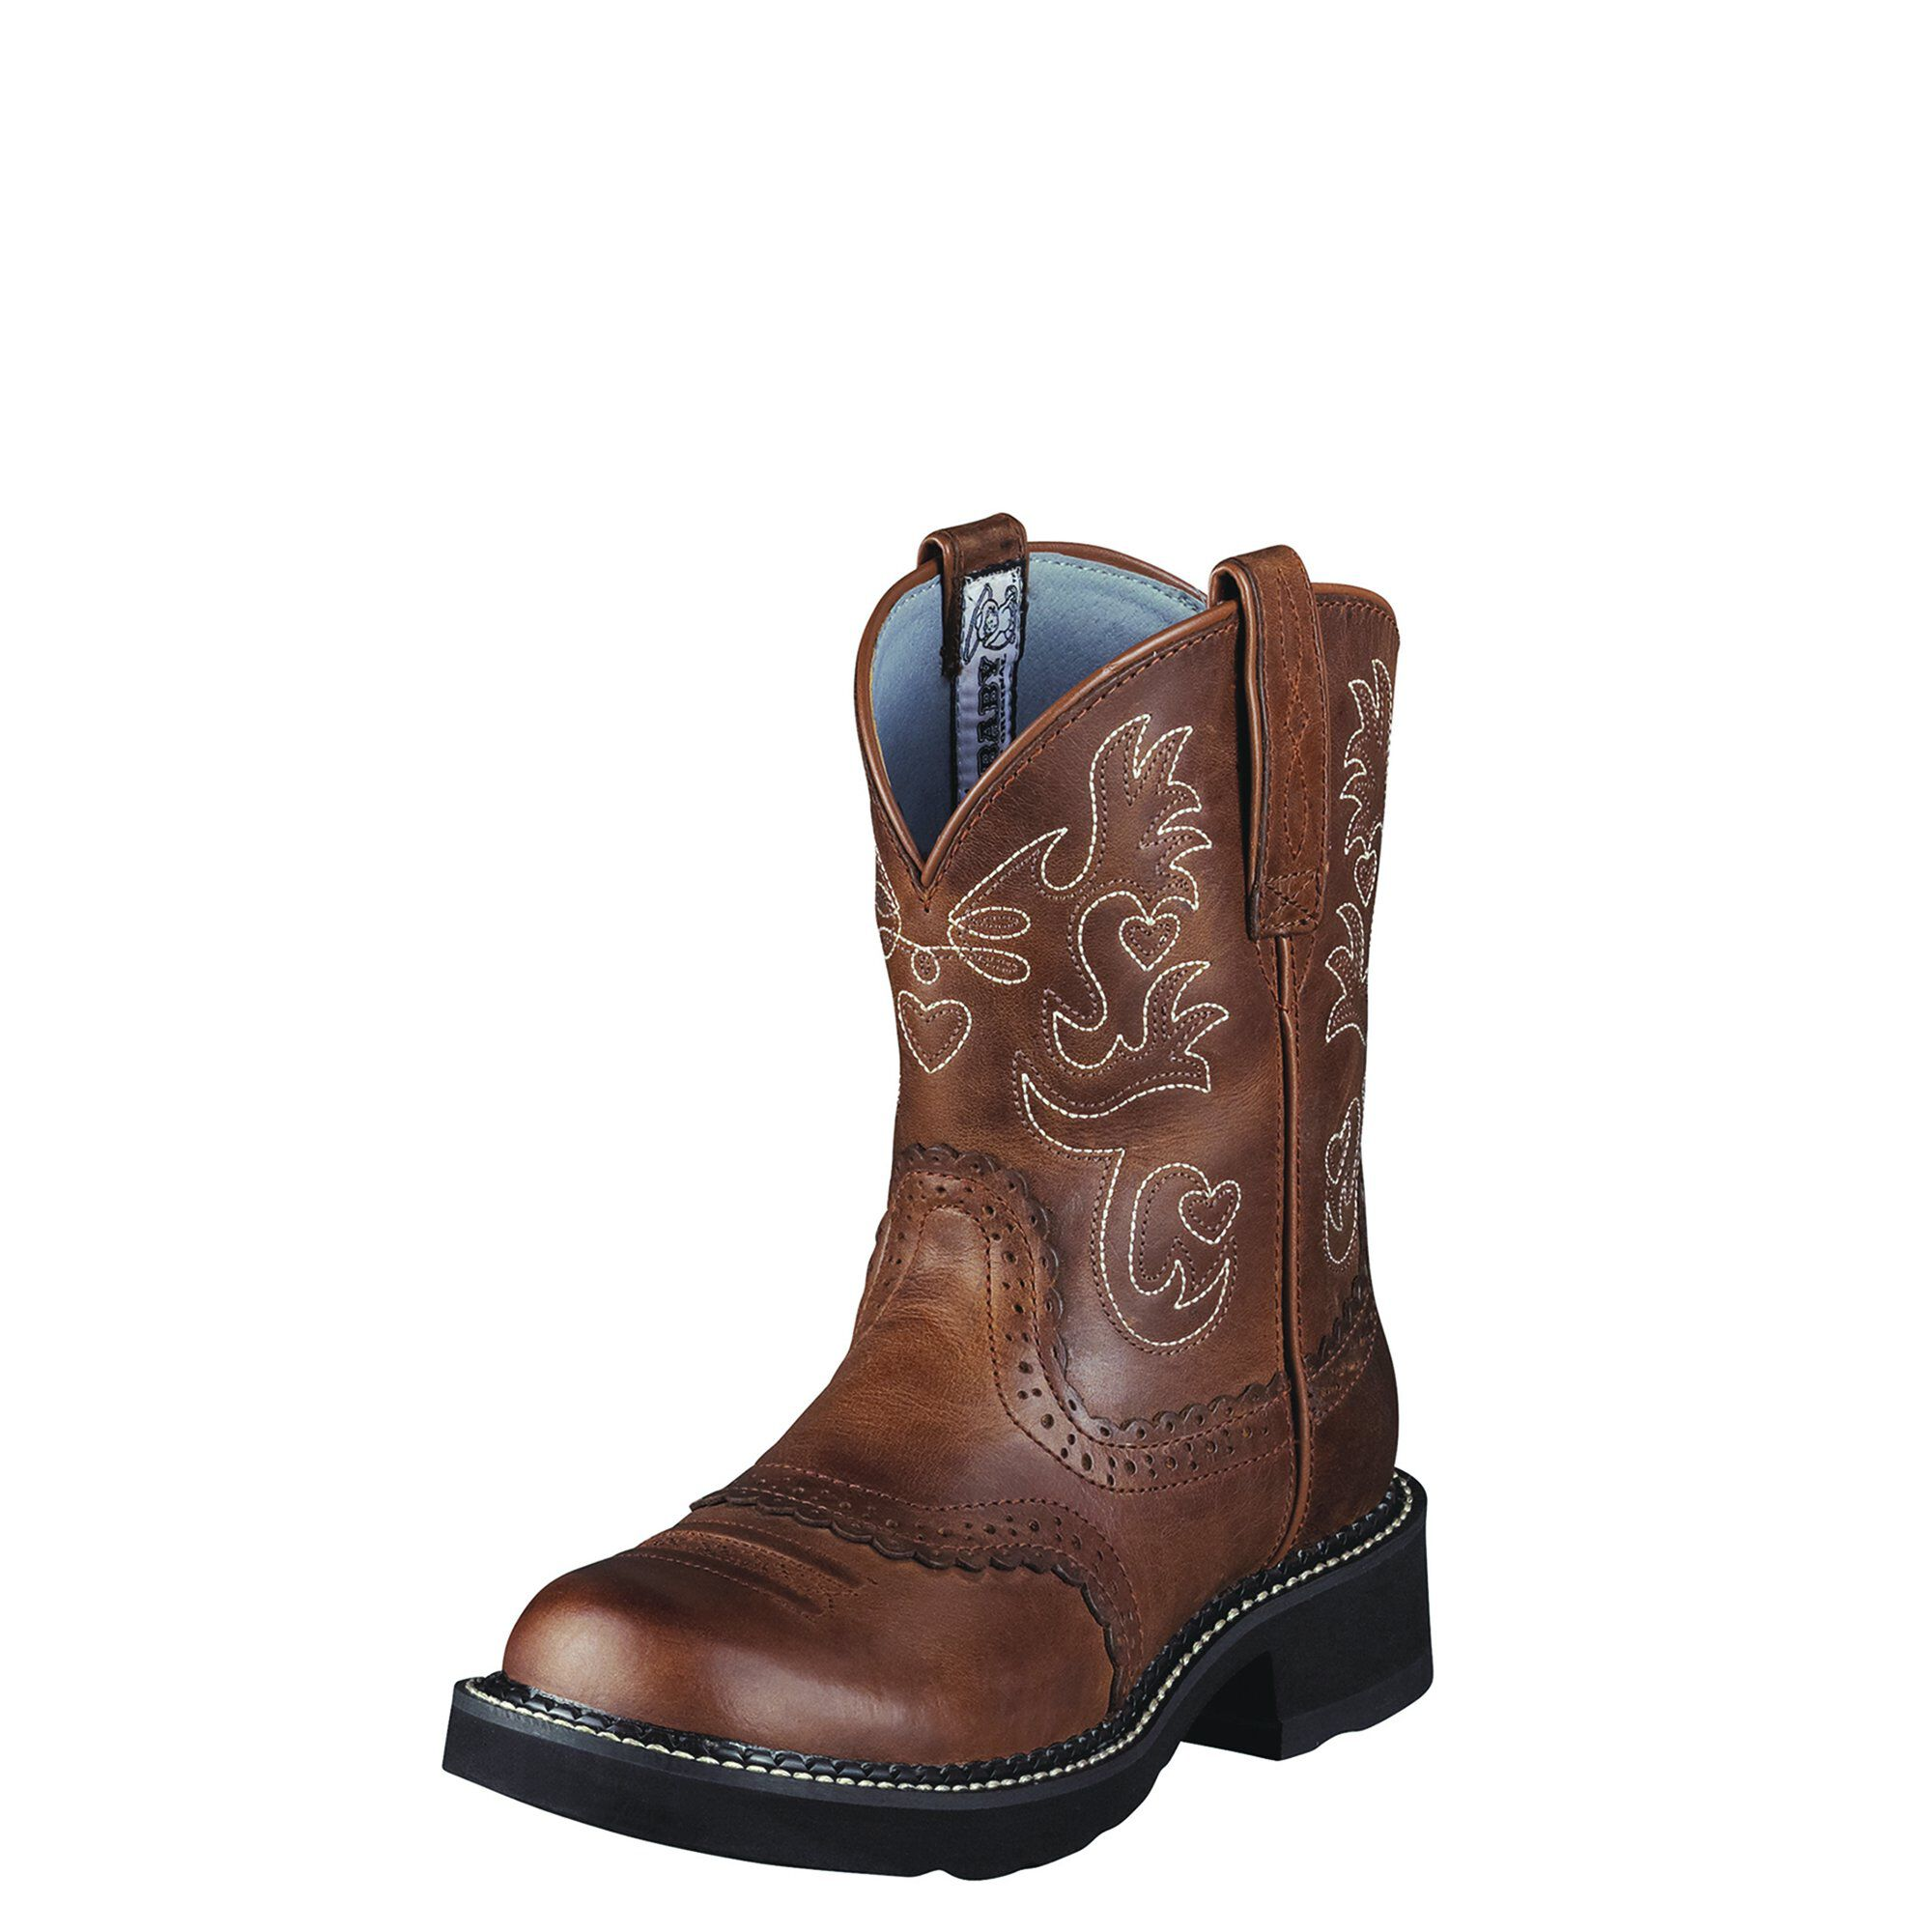 Women's Fatbaby Saddle Western Boots in Russet Rebel Leather by Ariat